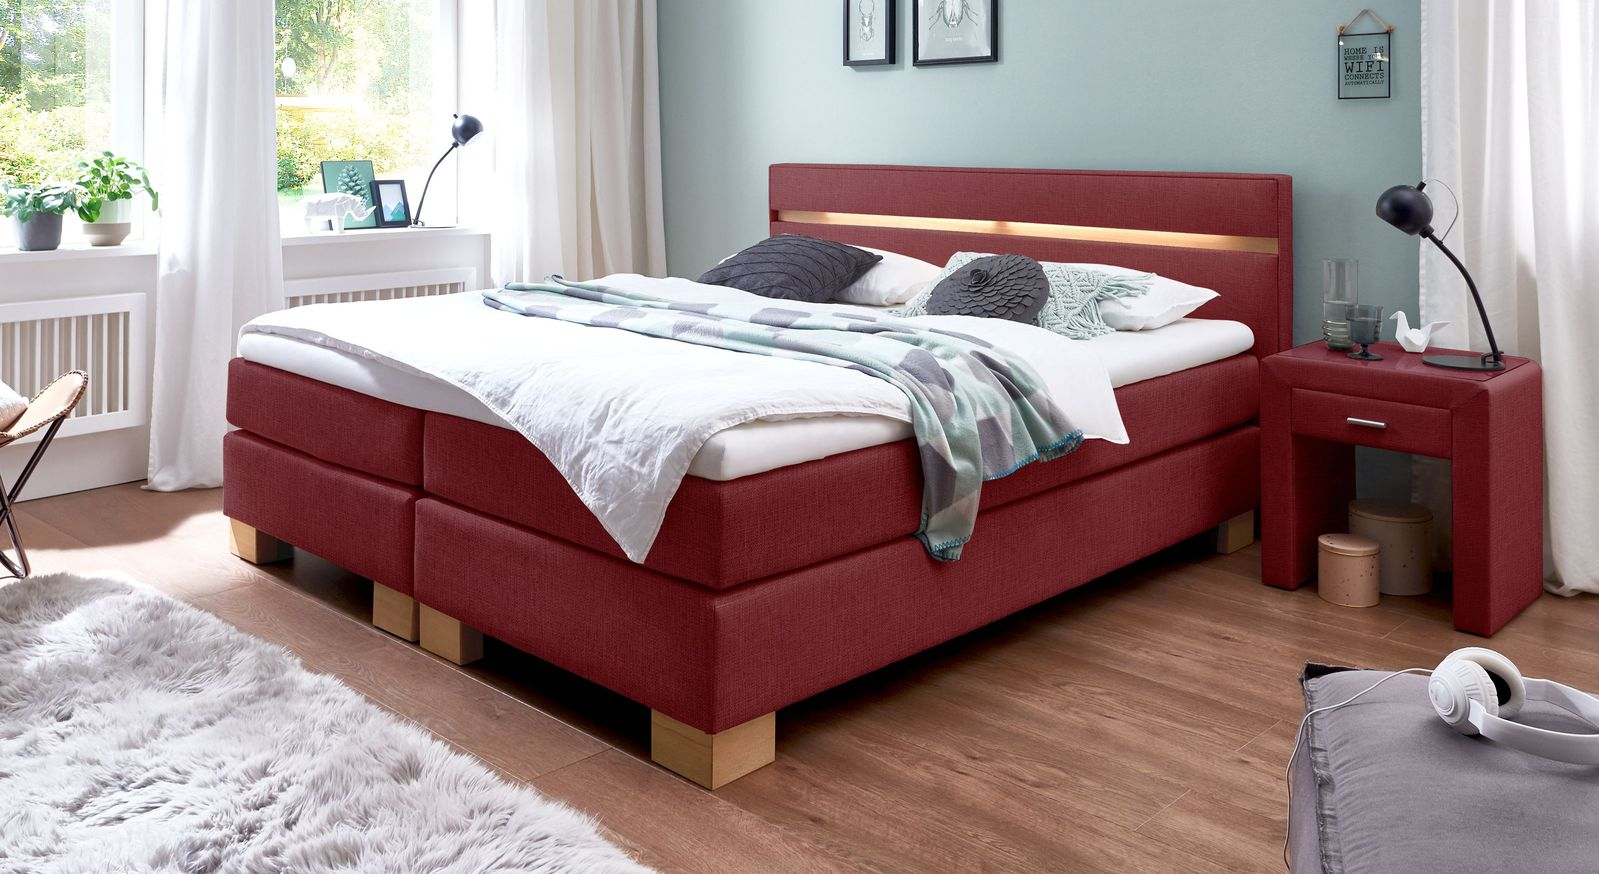 53 cm hohes Boxspringbett Vincenzo aus meliertem Webstoff in Rot